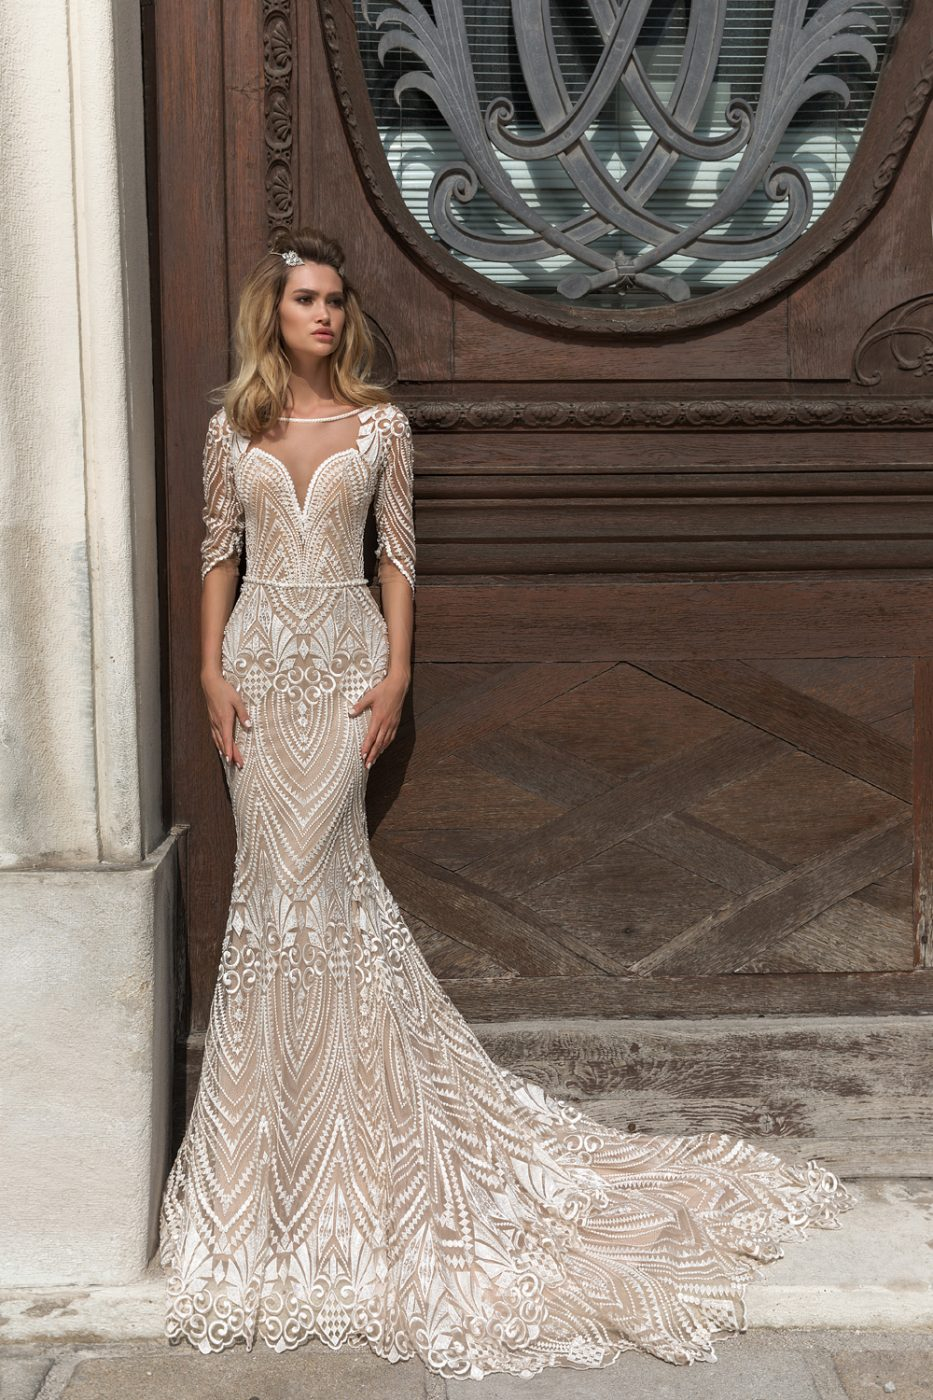 fitted wedding dress by Crystal Design Couture